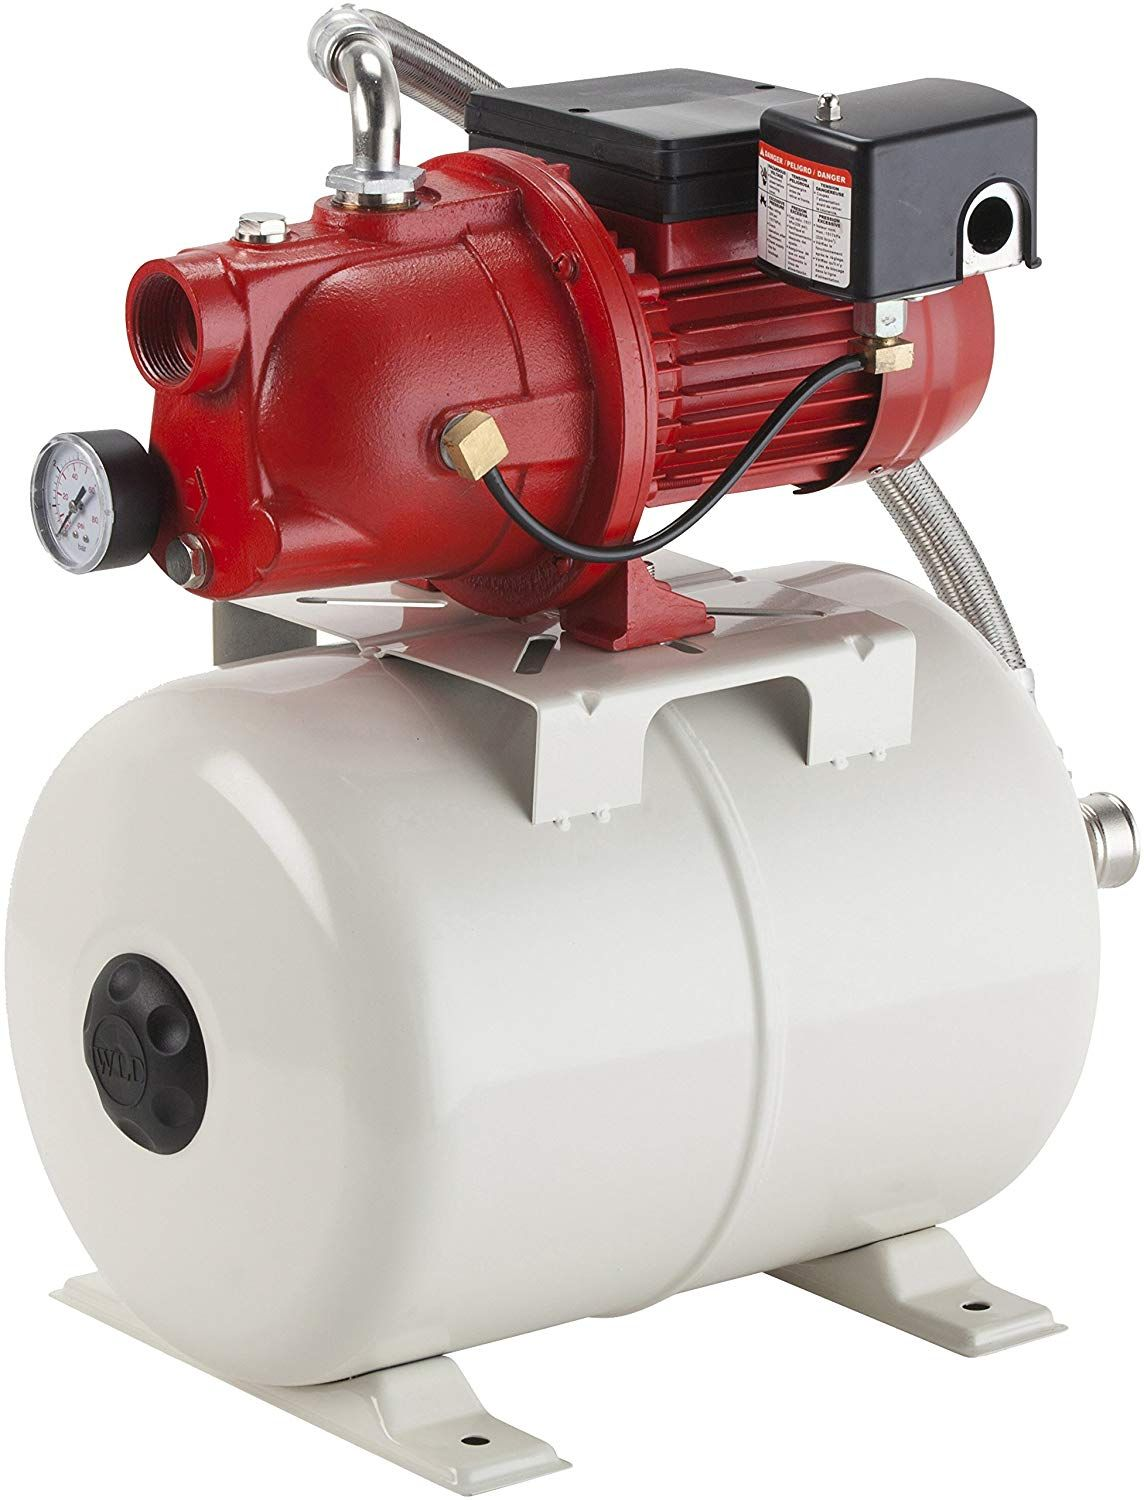 Top 10 Best Shallow Well Jet Pumps in 2019 - Reviews | Top